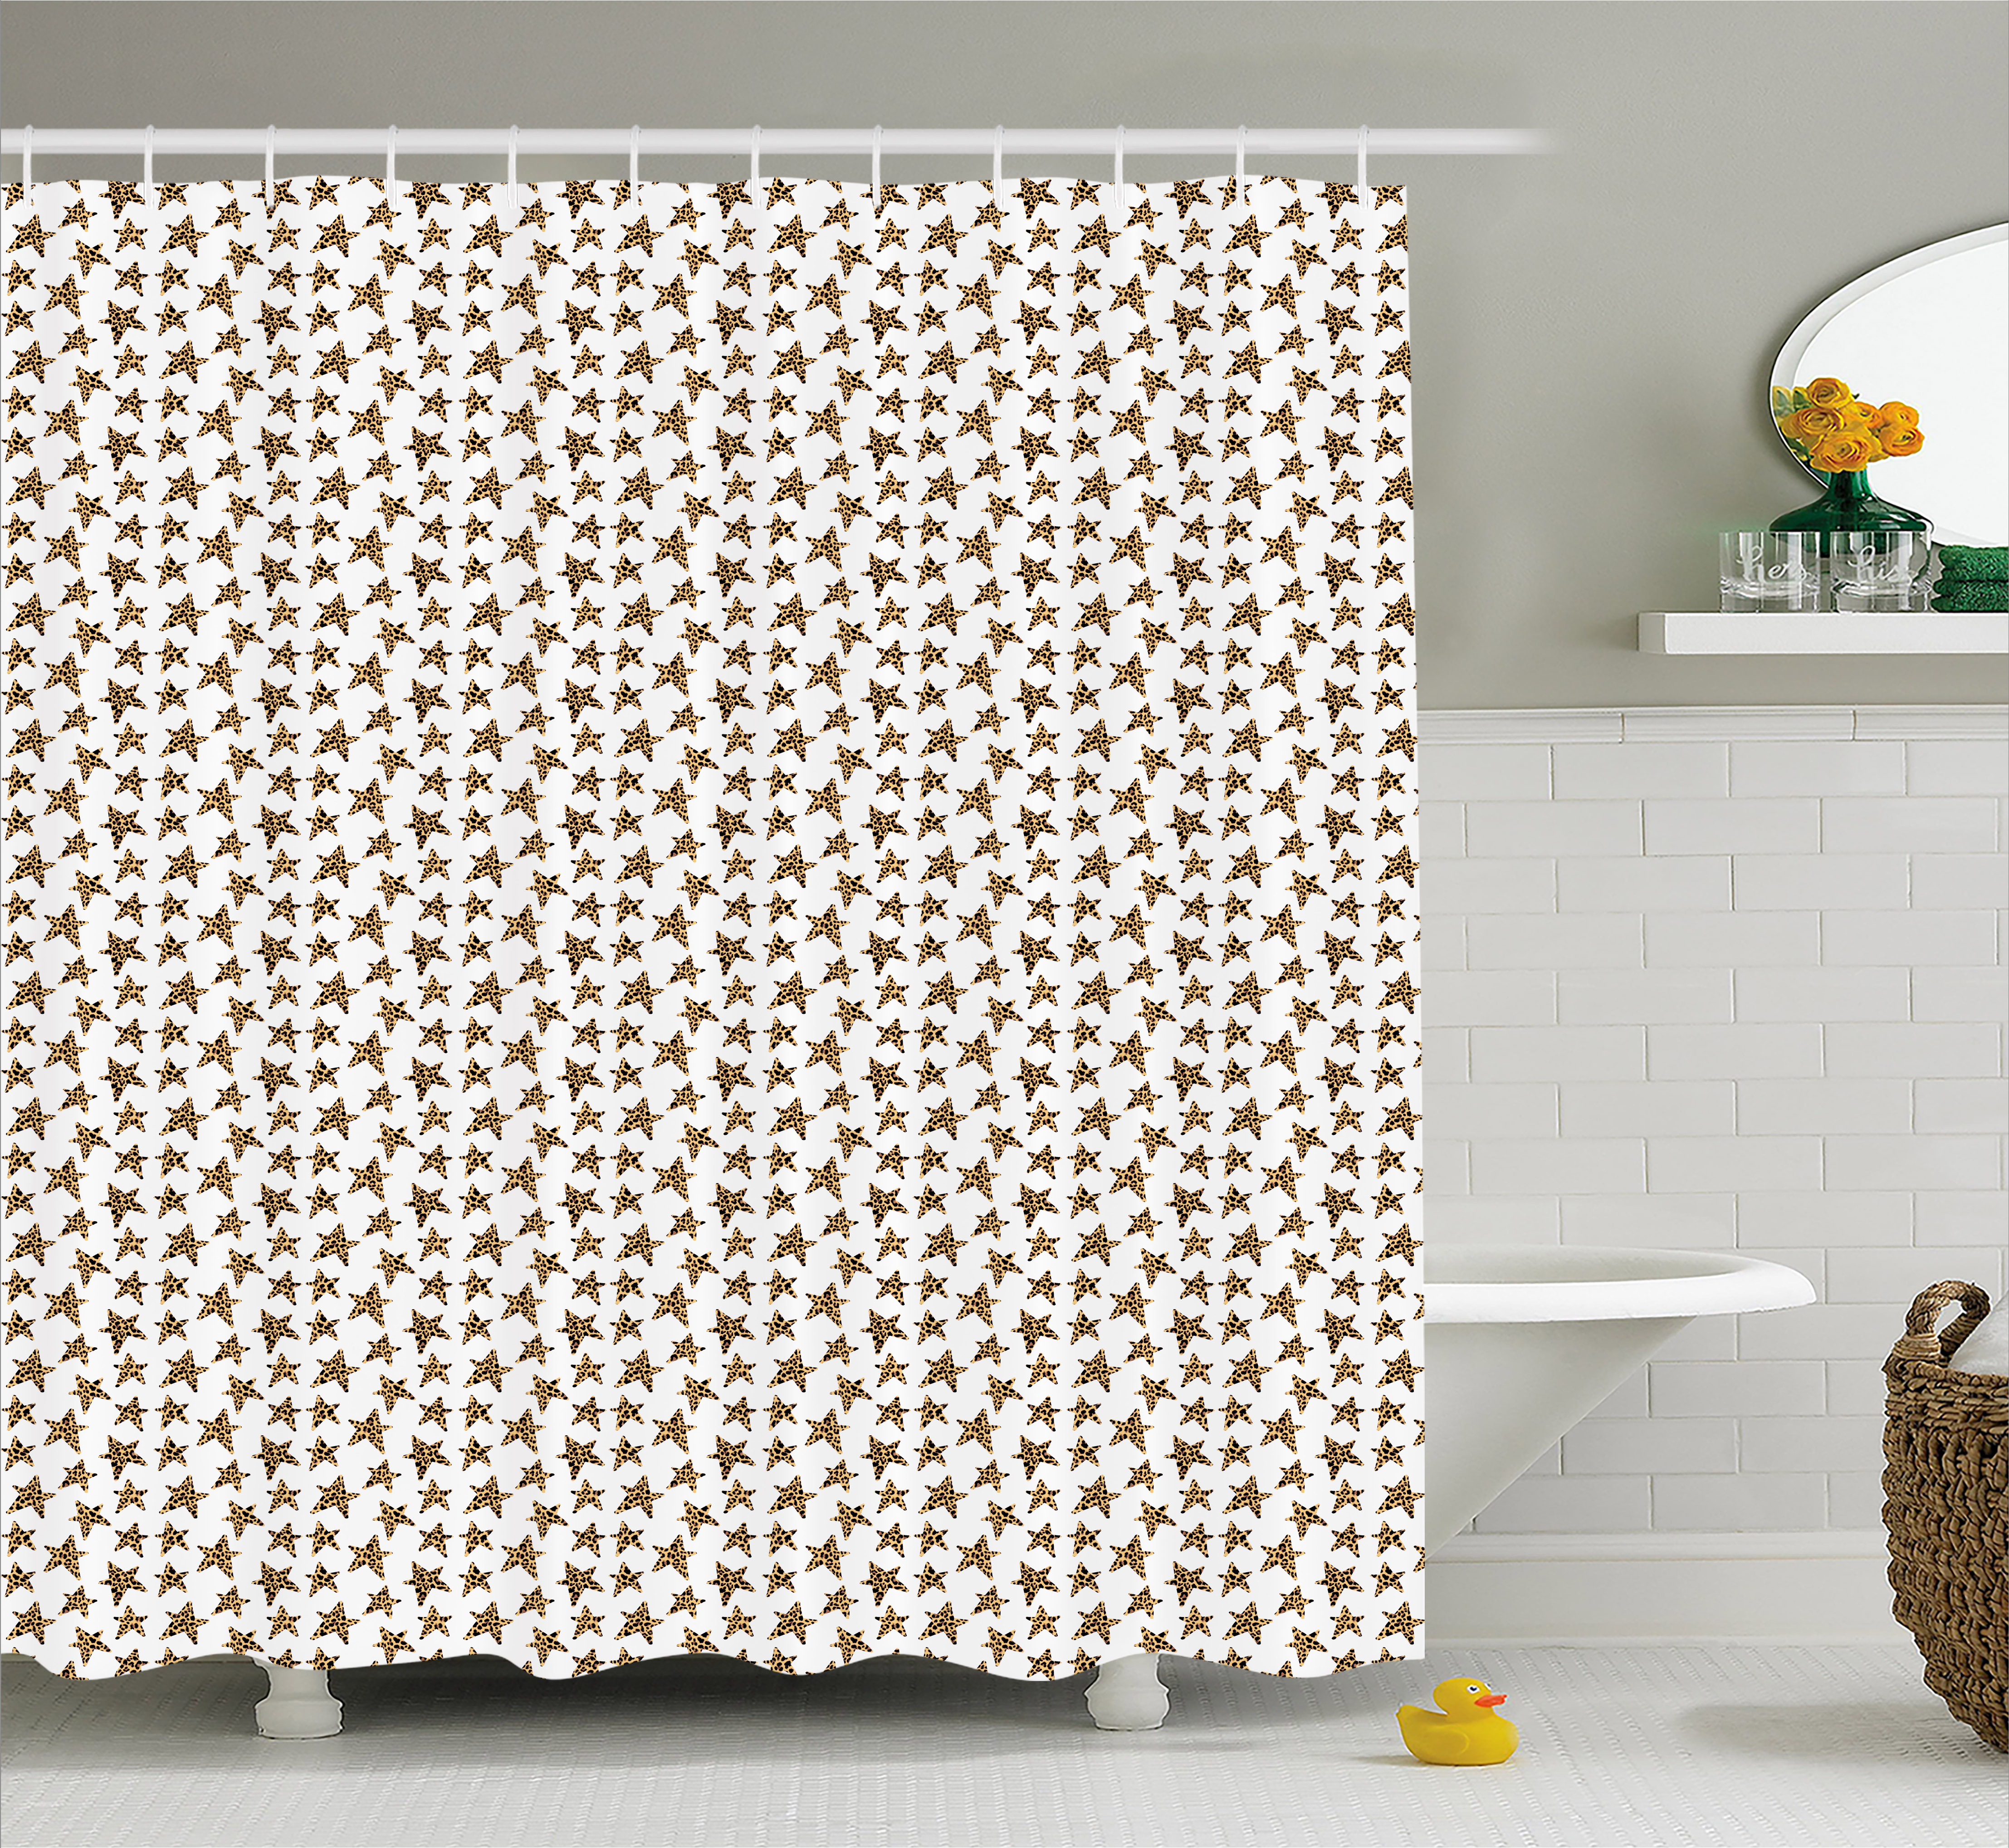 Star Shower Curtain Skin Of Leopard Pattern Punk Rock Themed Illustration Abstract Animal Design Fabric Bathroom Set With Hooks 69W X 70L Inches